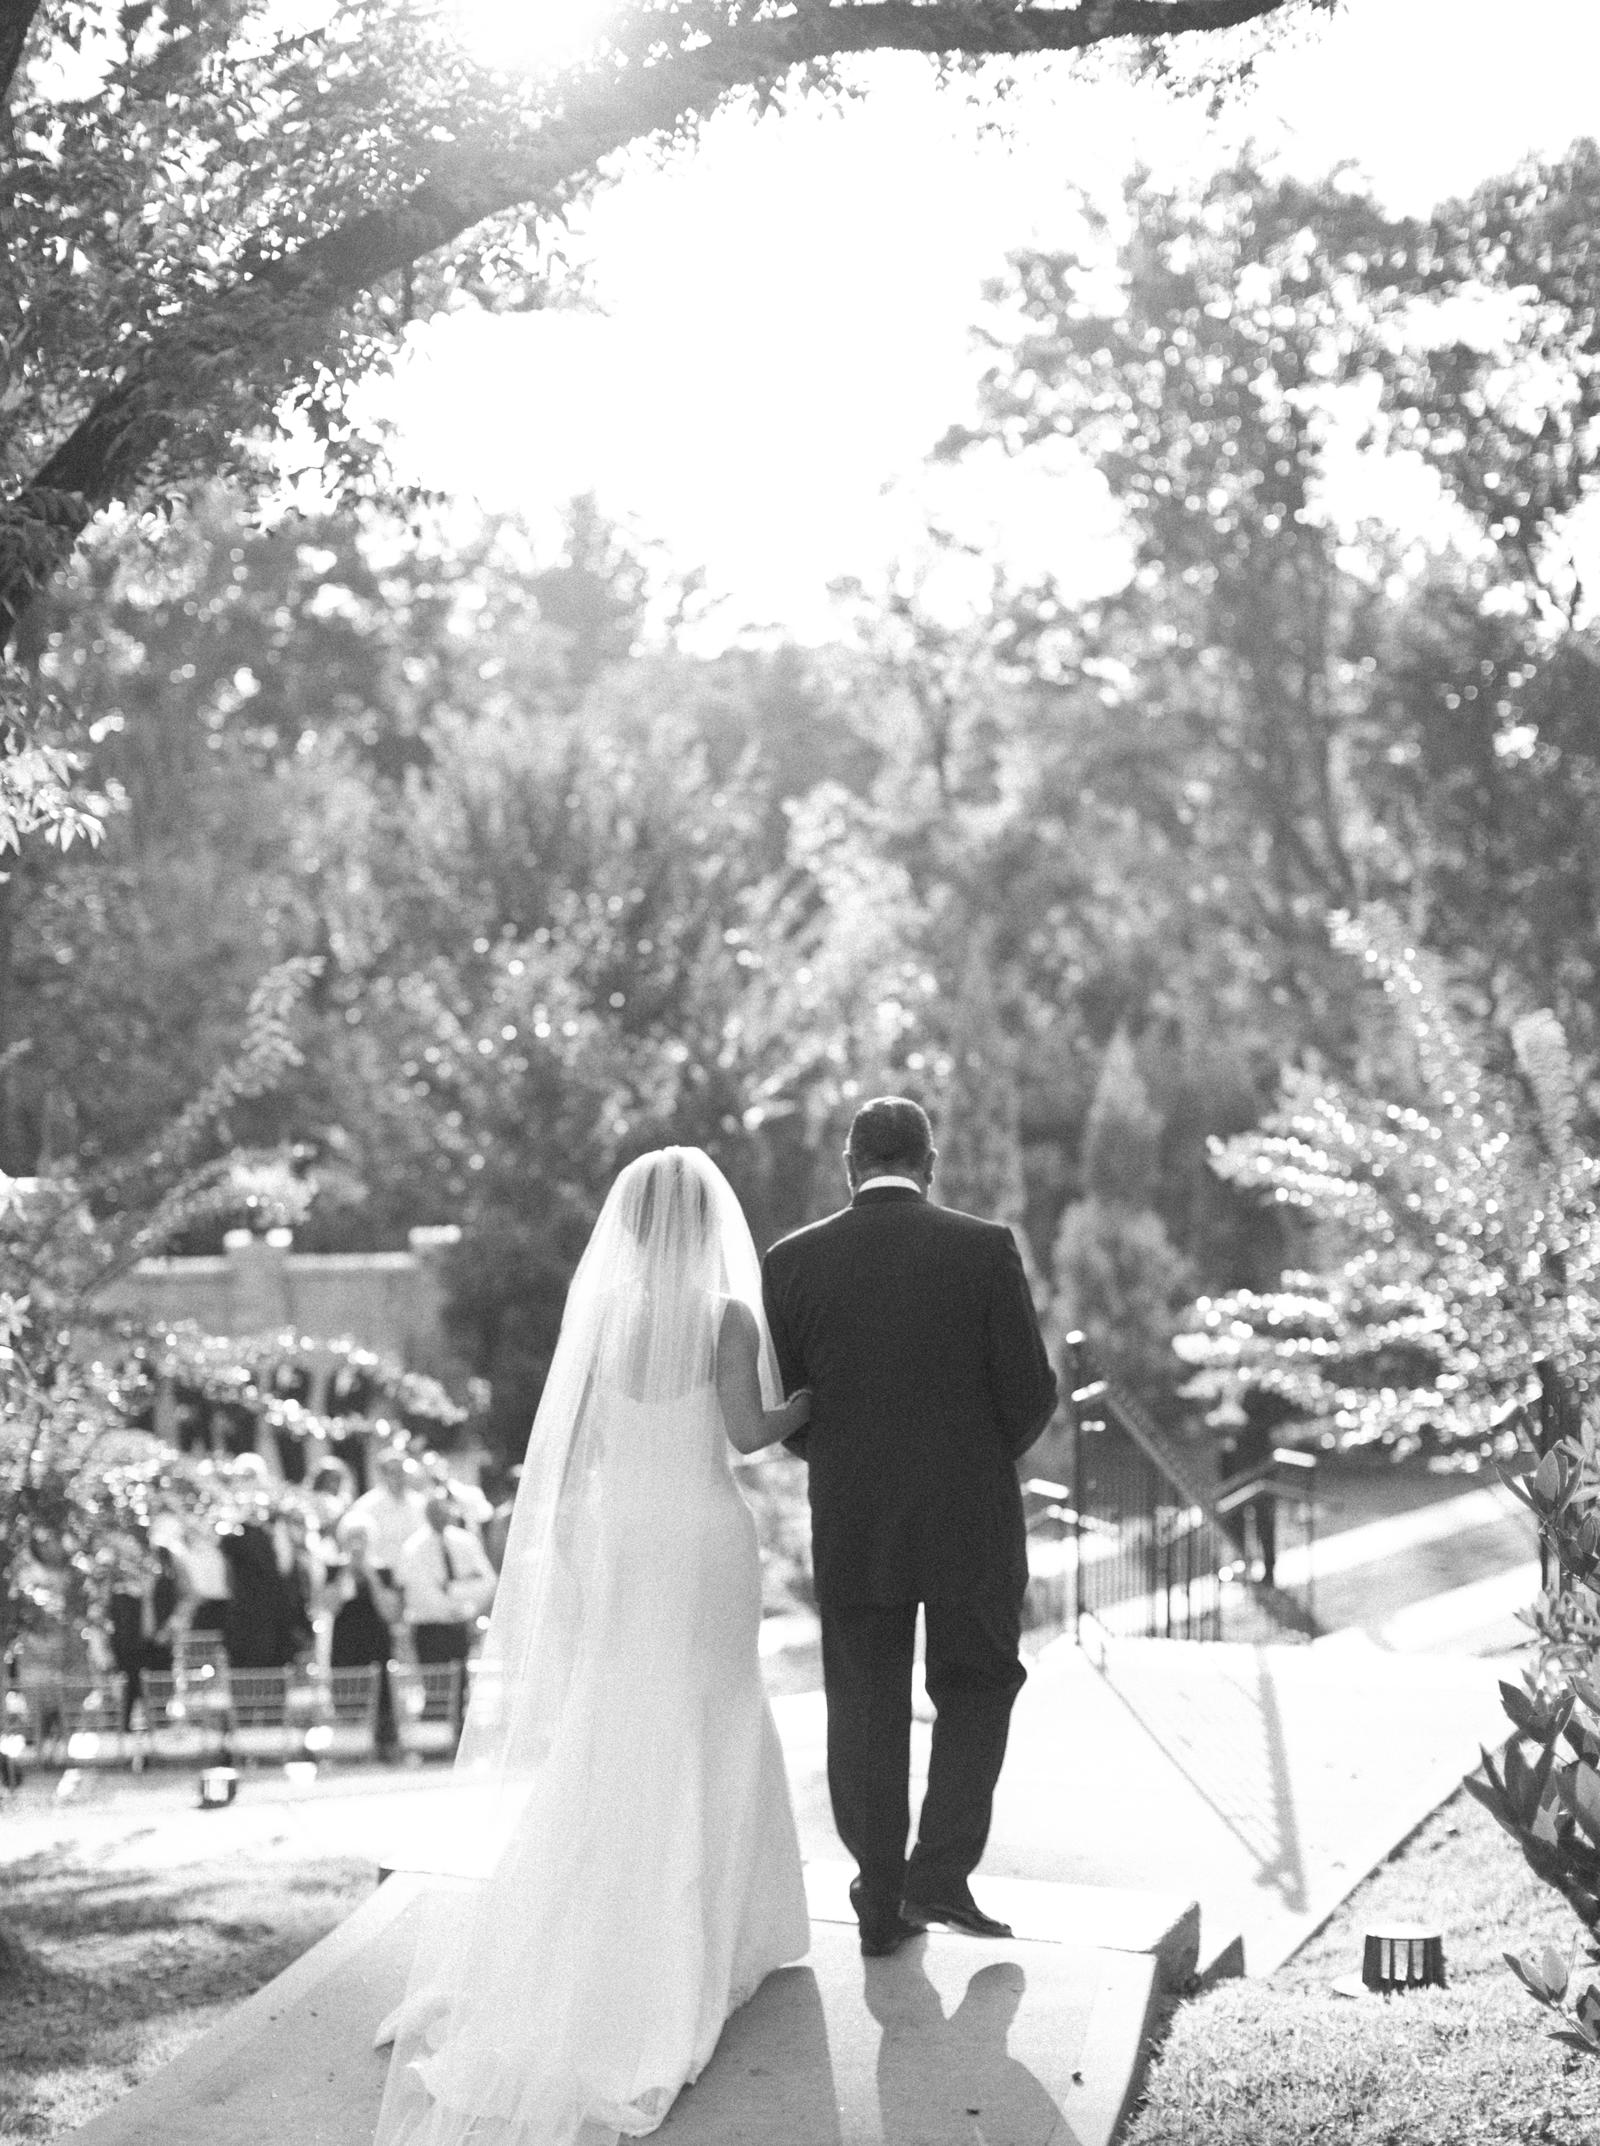 Wedding Photography | A bride and her father walk to the wedding ceremony, arm-in-arm.